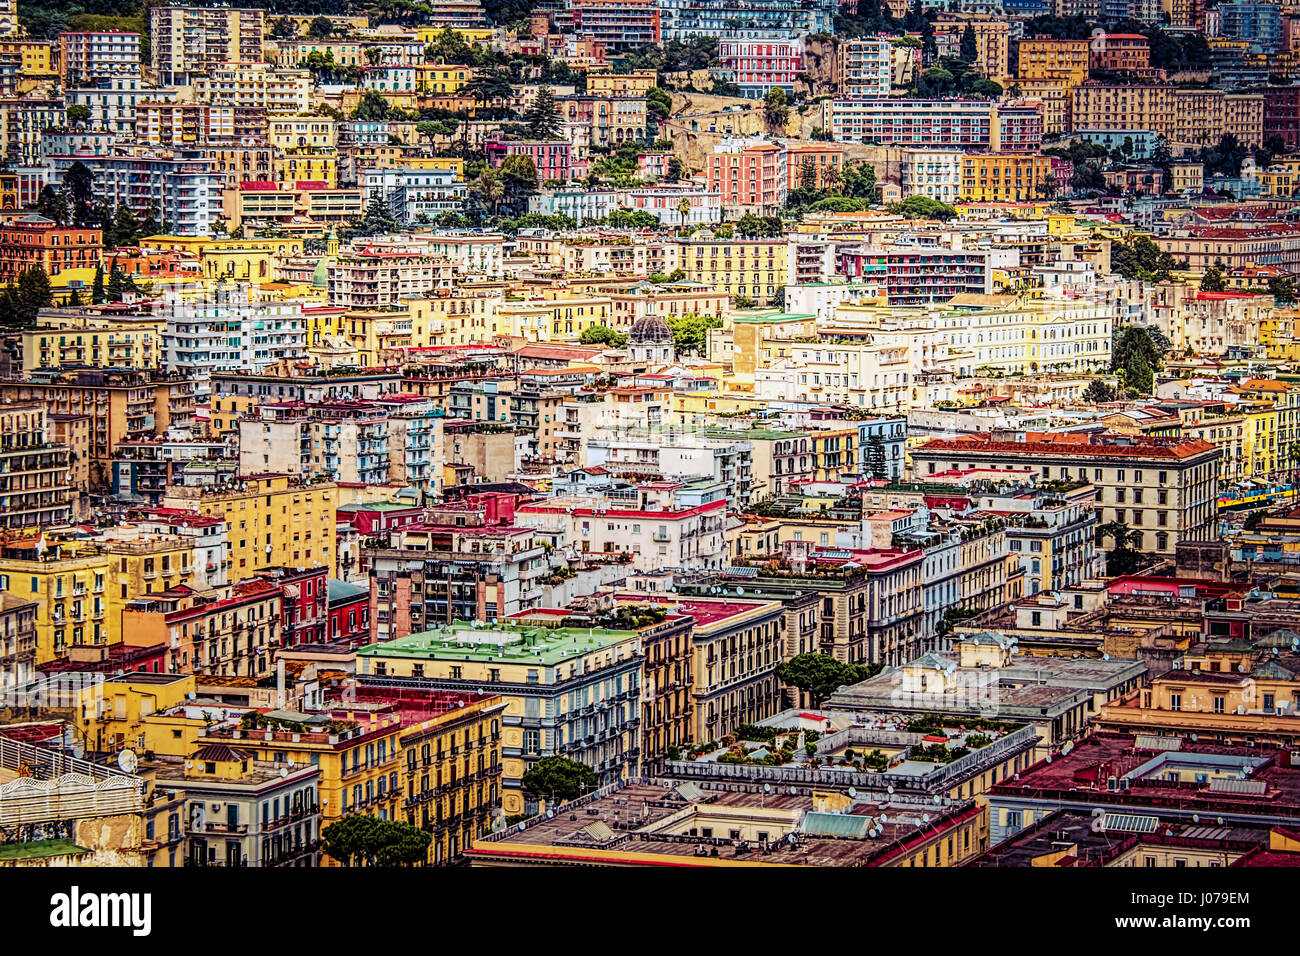 A view of downtown Naples, Italy - Stock Image